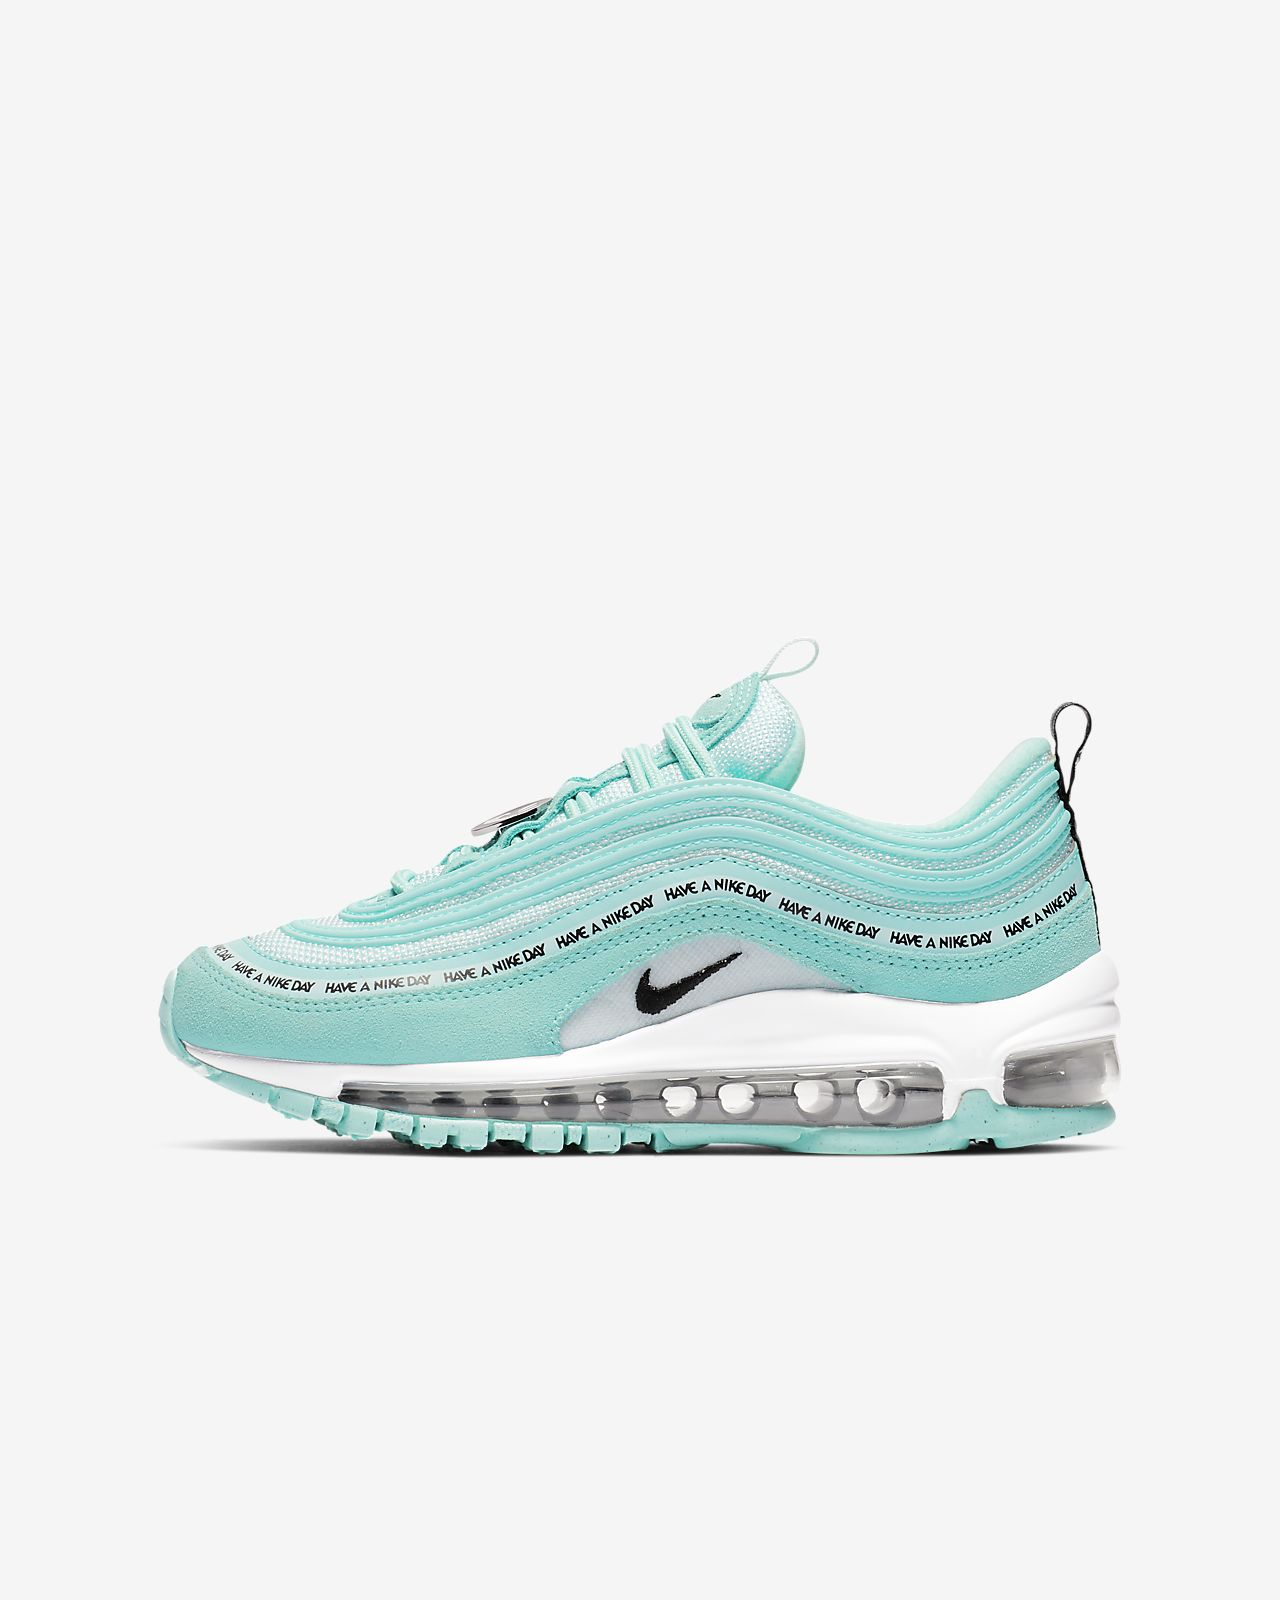 91fc5a5daa1 Nike Air Max 97 SE Older Kids  Shoe. Nike.com LU